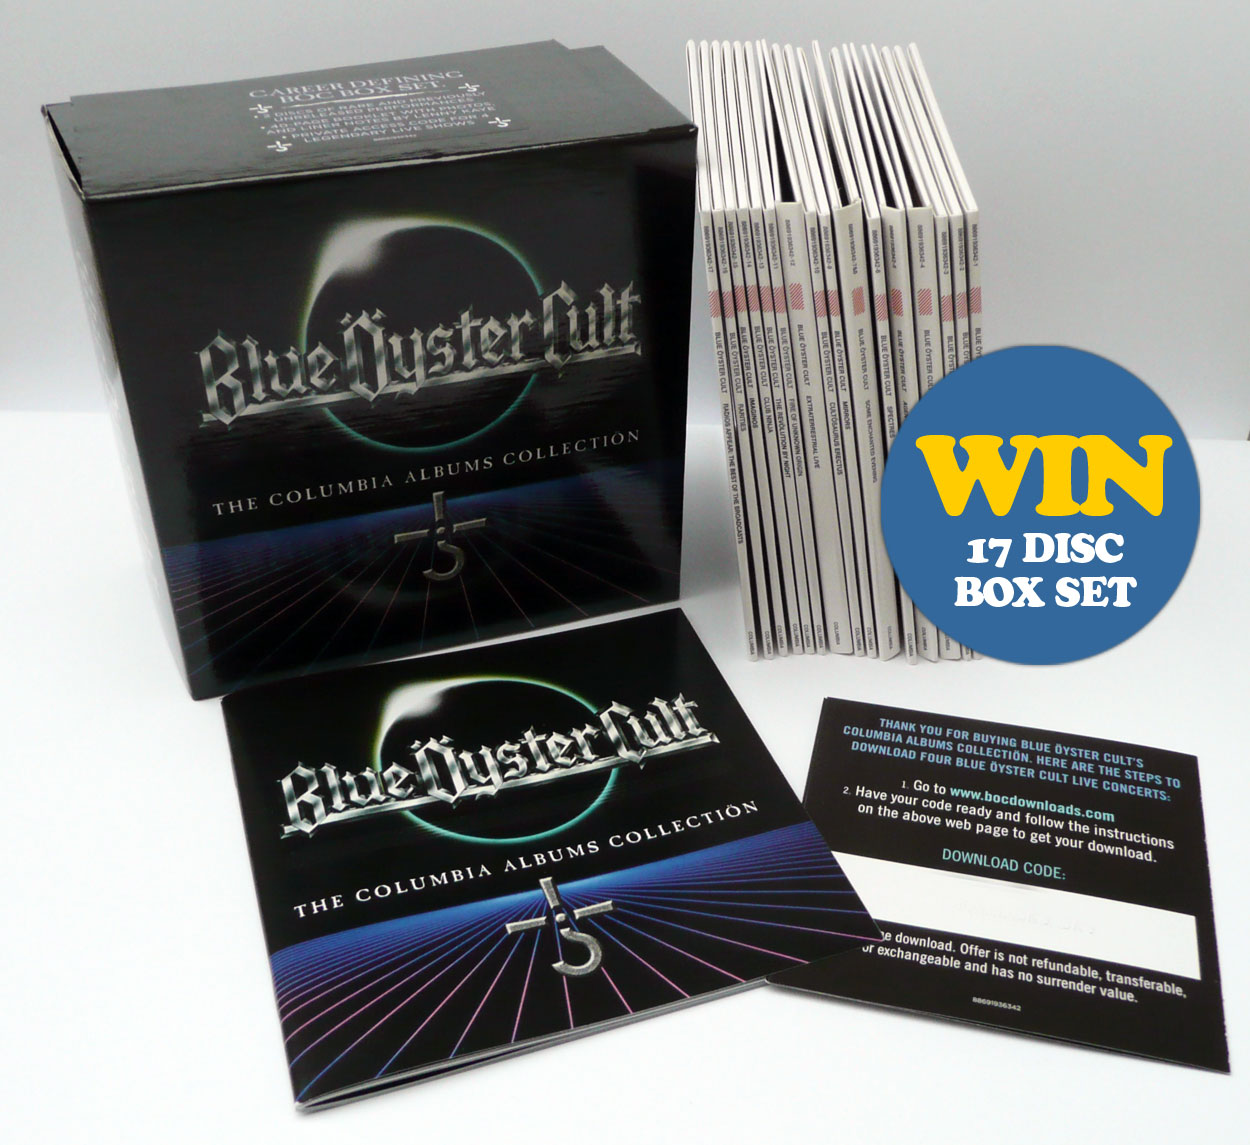 COMPETITION Win a Blue Oyster Cult box set